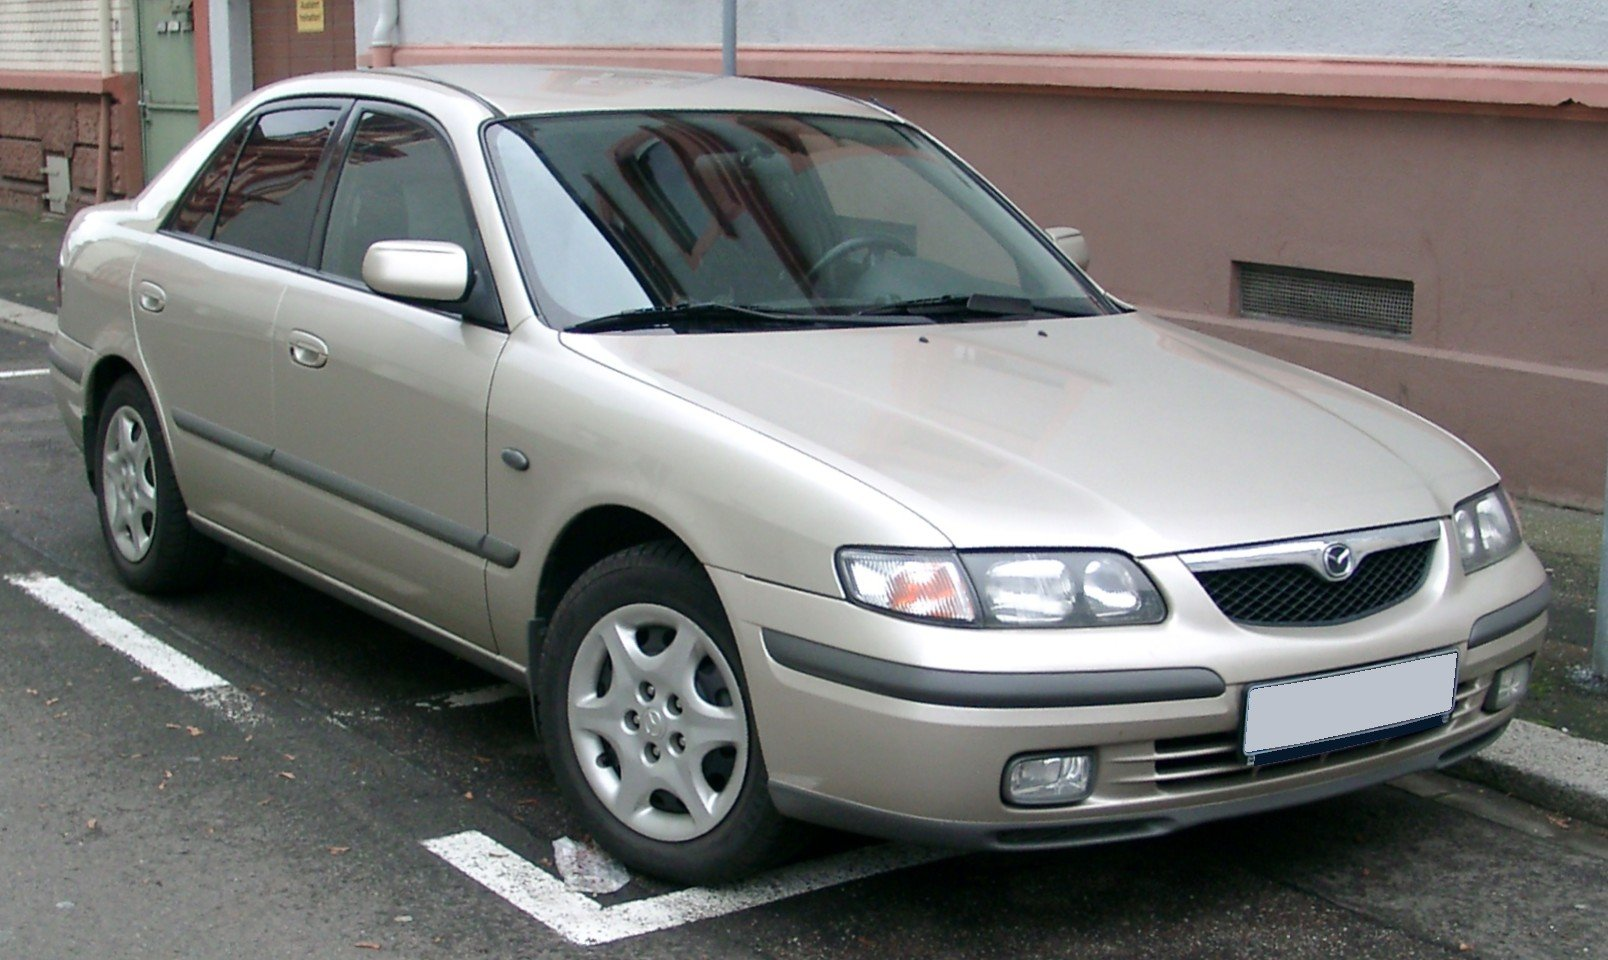 2002 Mazda 626 v (gf) – pictures, information and specs - Auto-Database.com